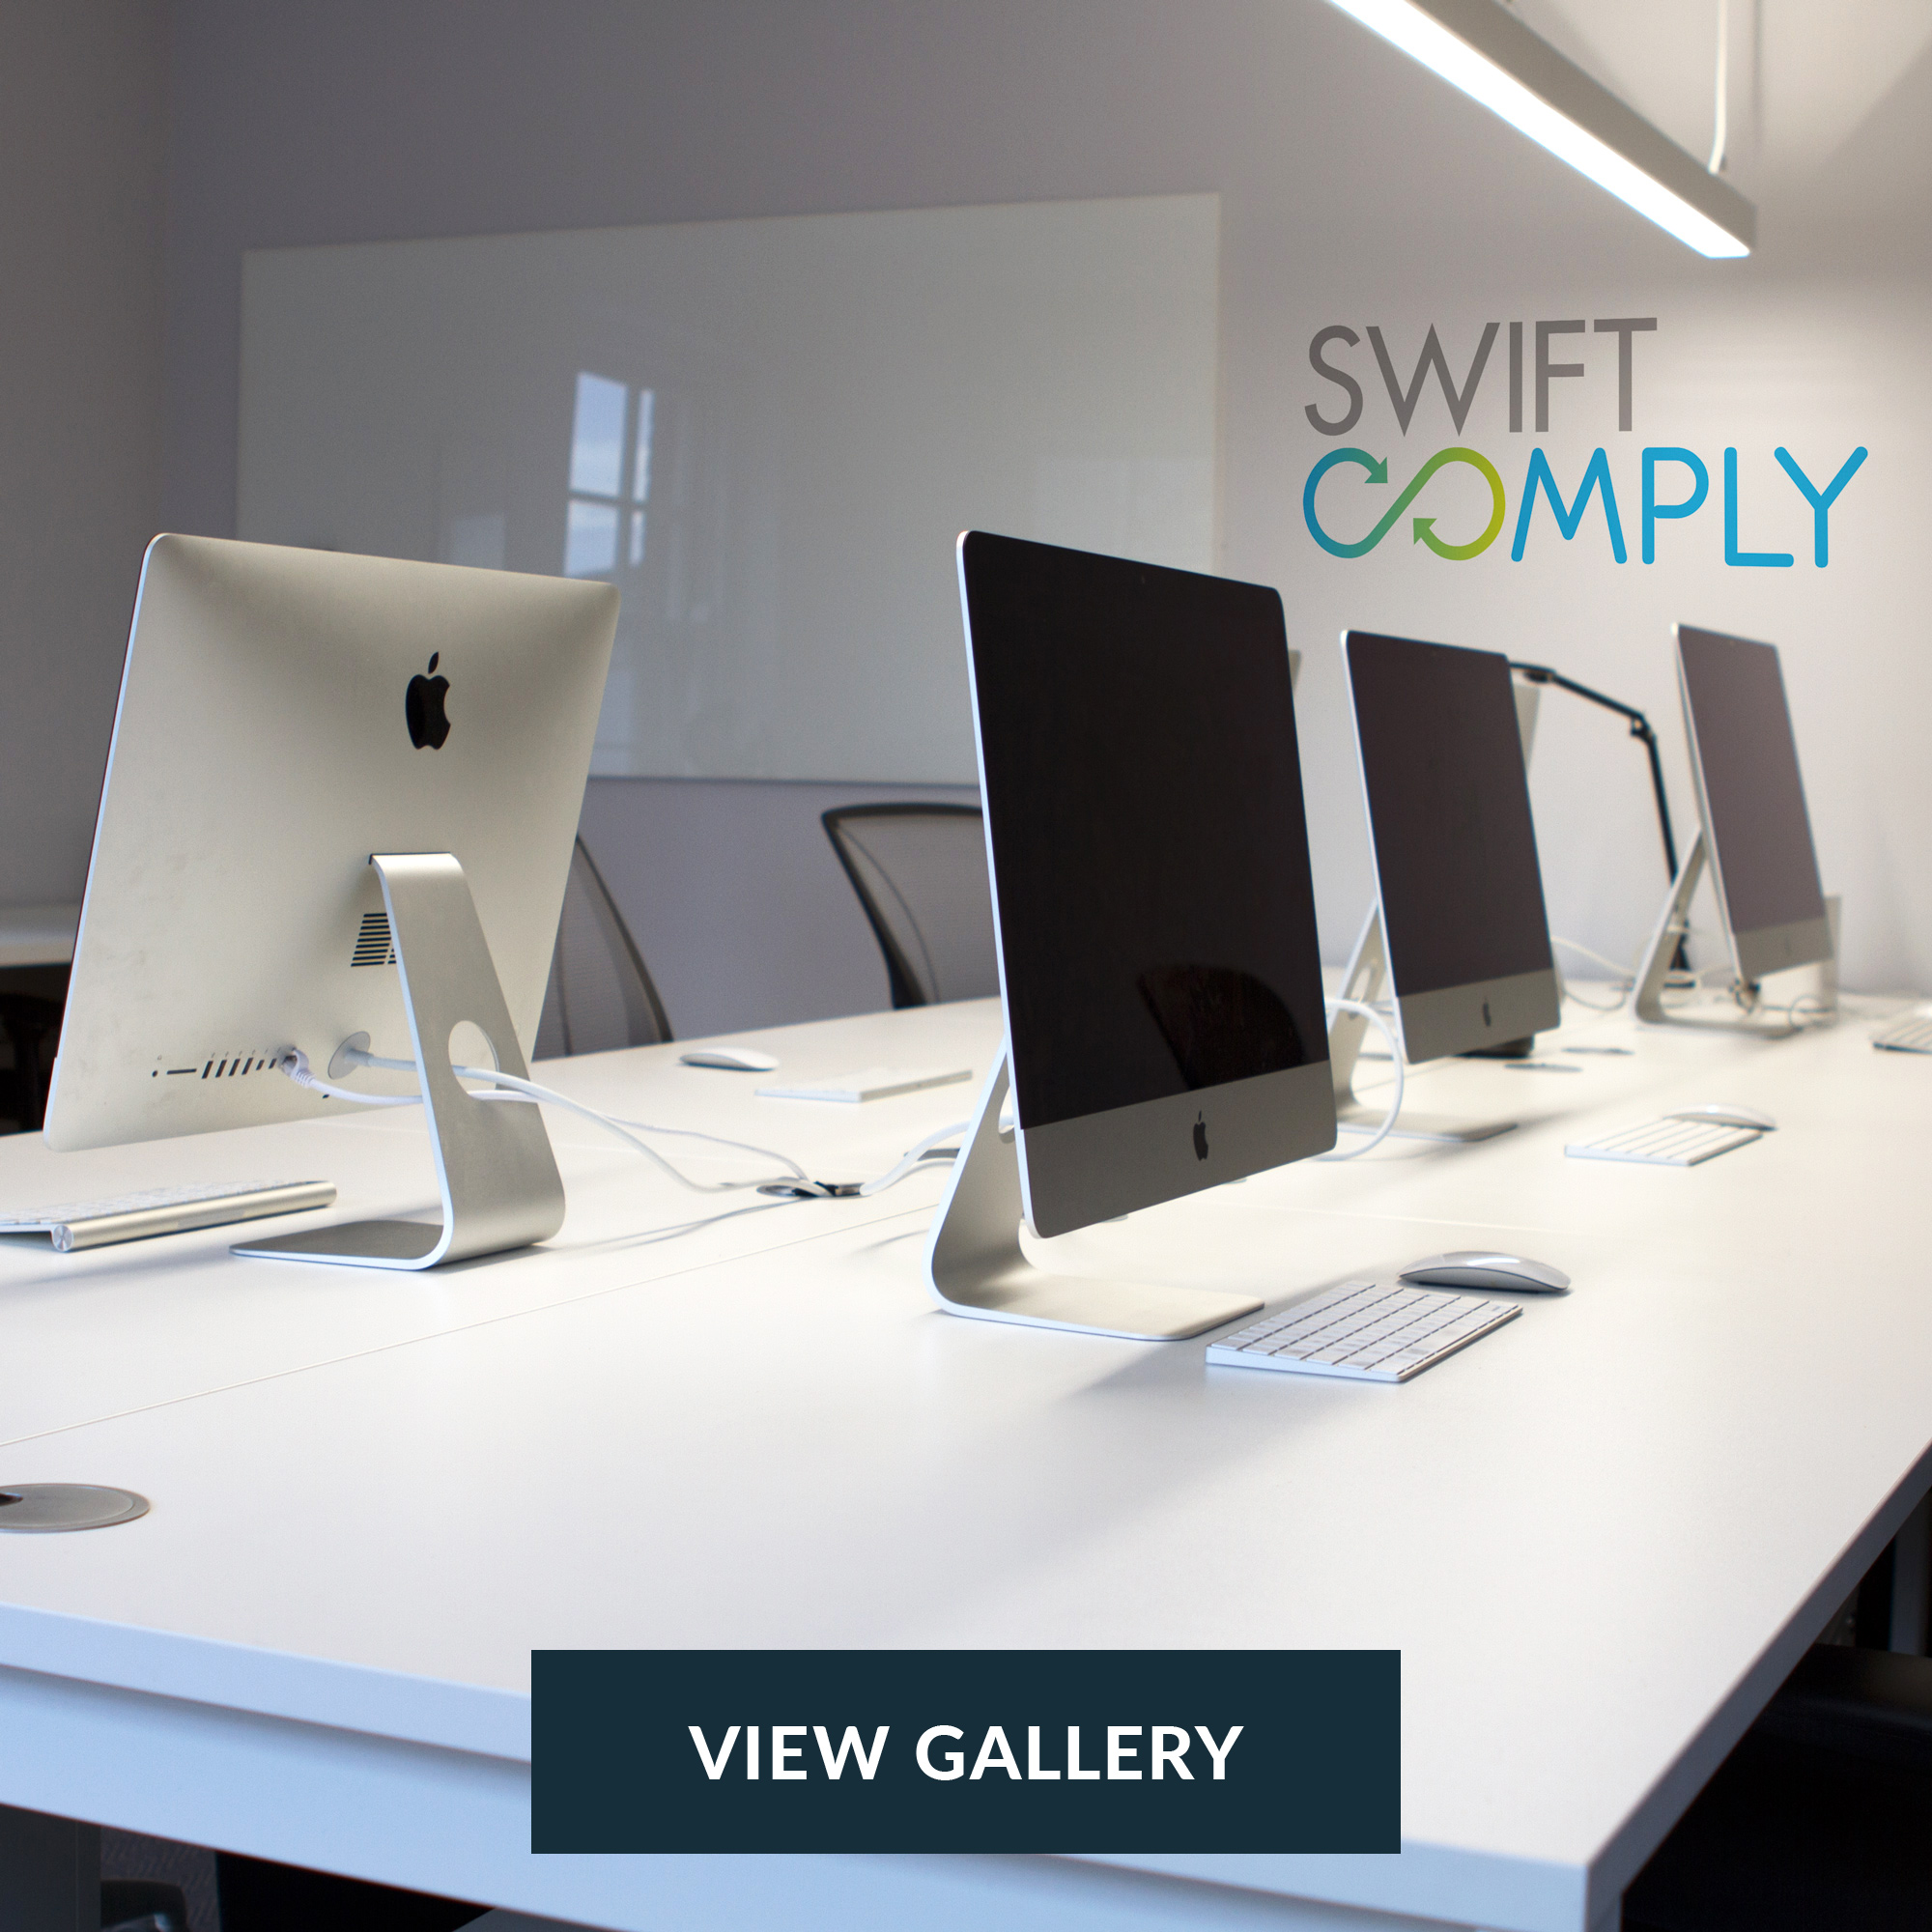 Swift Comply   Our fast track office fit out for Swift comply including glazed partitions, raised access flooring, bespoke joinery, feature ceilings, fire and acoustic rated partitions. This fit out was completed in a multi-tenanted building without disruption to the building users.